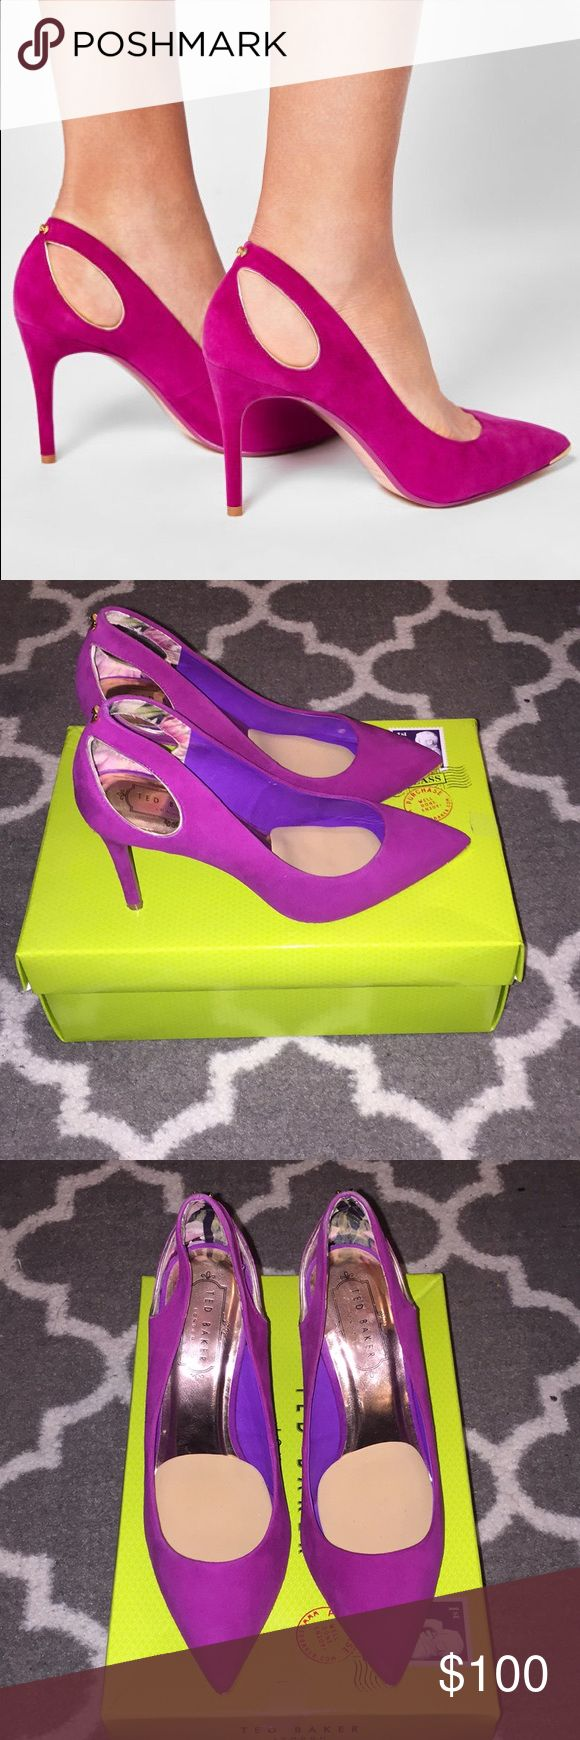 Ted Baker Cut Out Heels Worn only once; love these shoes, but they run a bit on the bigger side; US6, but fits like a 7; I'm a true 6 1/2; comes in only whole sizes; so if you're a 7 or 7 1/2 they will fit. Original price is tax included; suede leather; box included. Color is more purple than pink. Ted Baker Shoes Heels